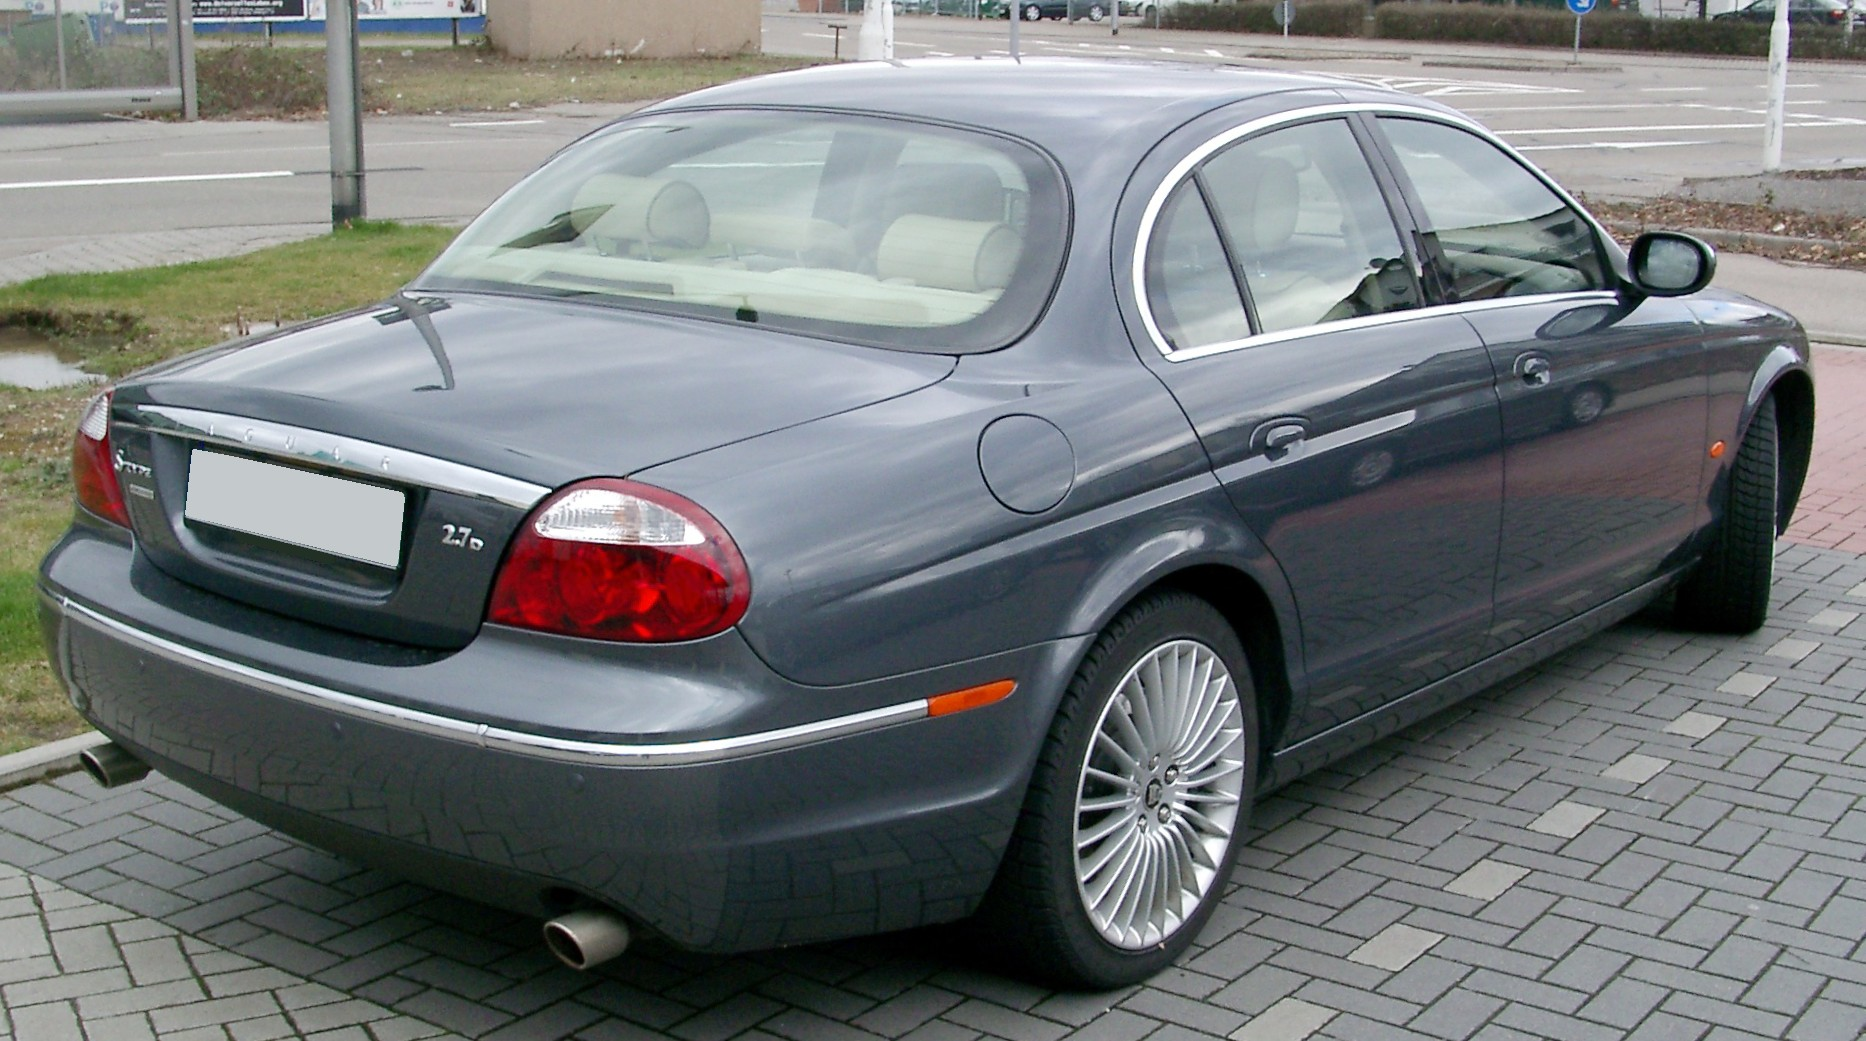 File:Jaguar S Type Rear 20080301